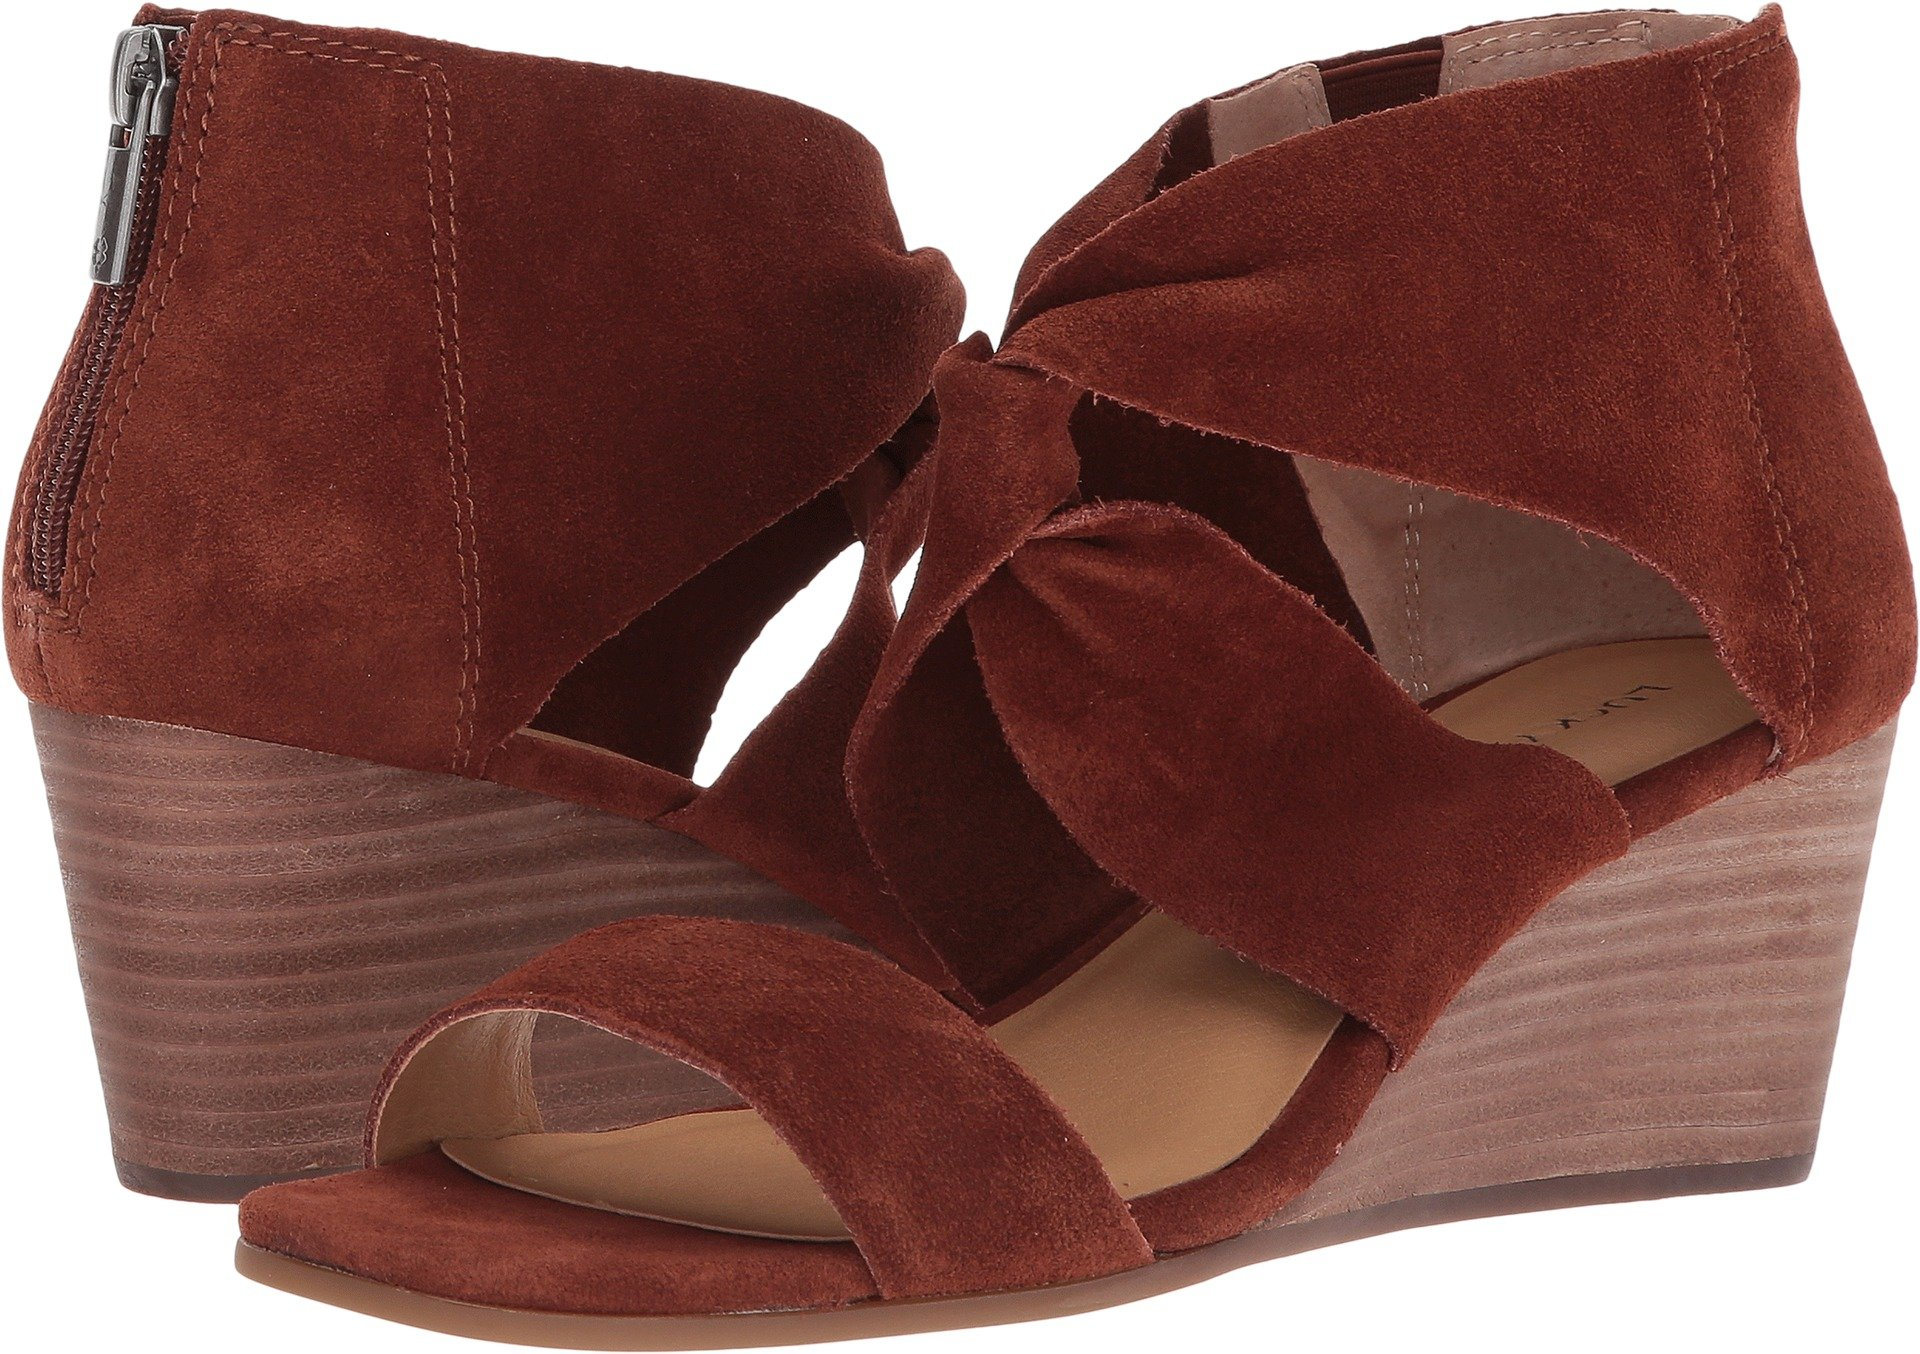 Lucky Brand Women's Tammanee Heeled Sandal, Rye, 7 Medium US